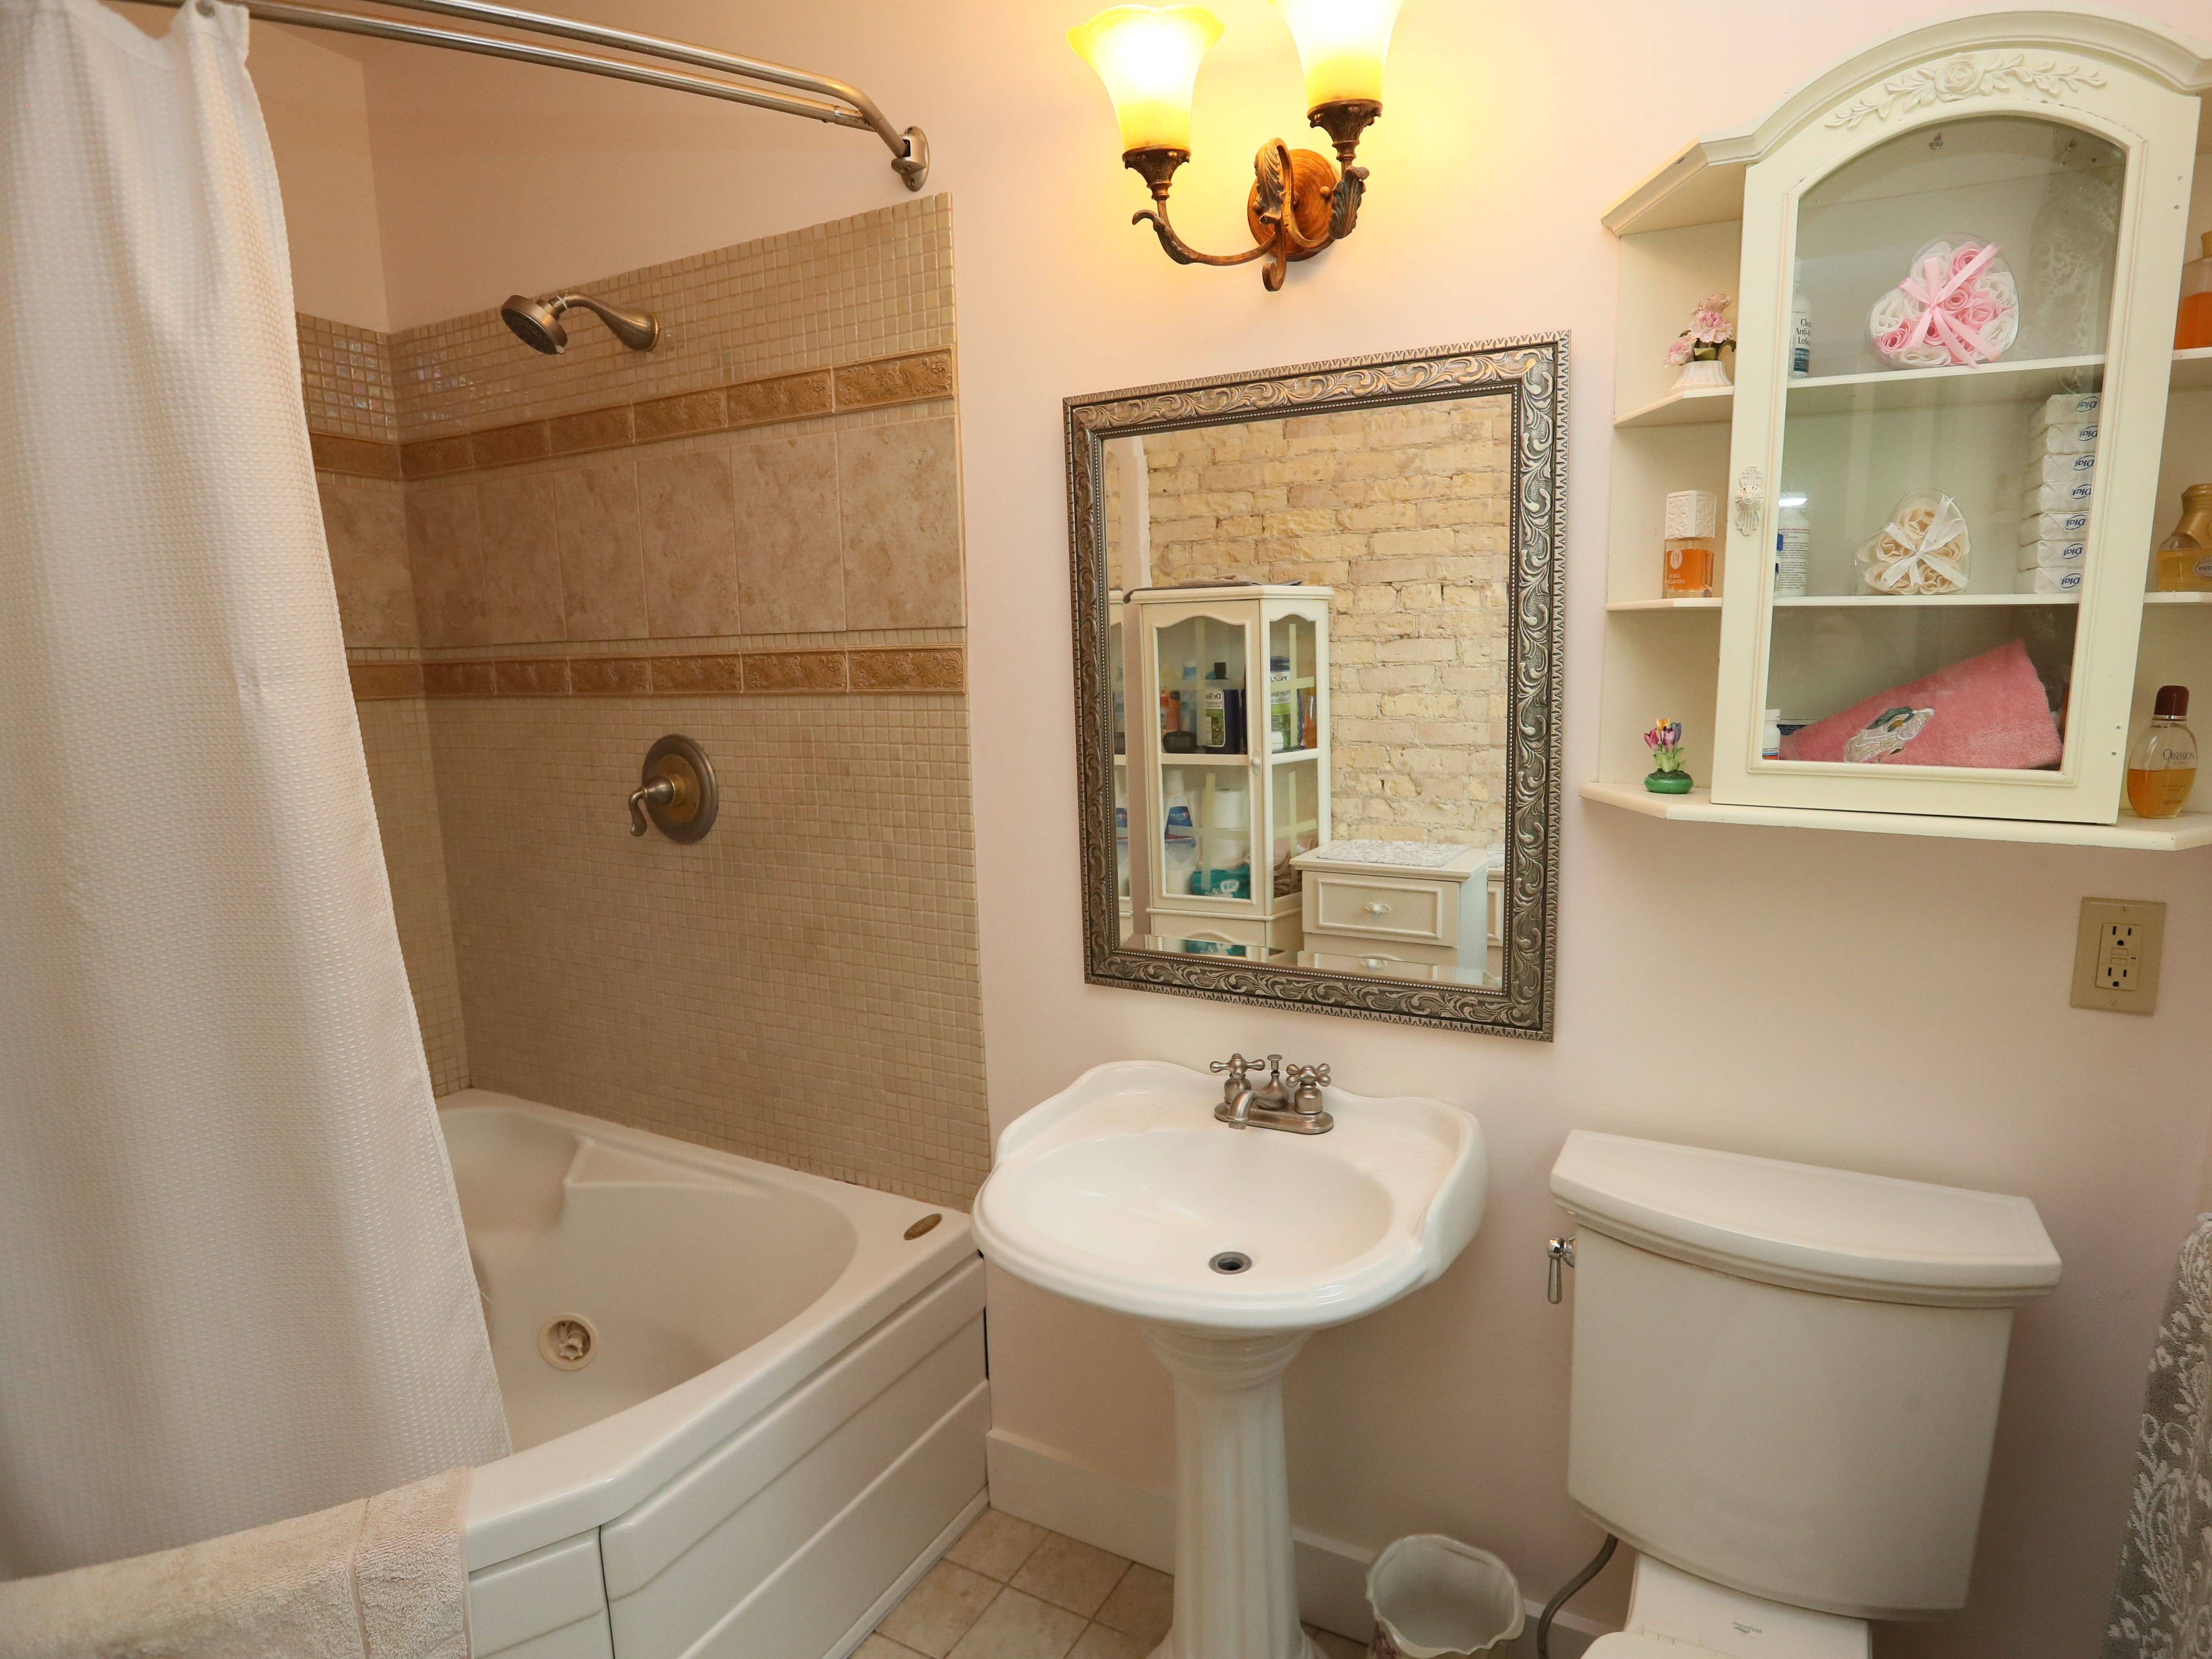 The master bathroom is one of three full baths in the house.